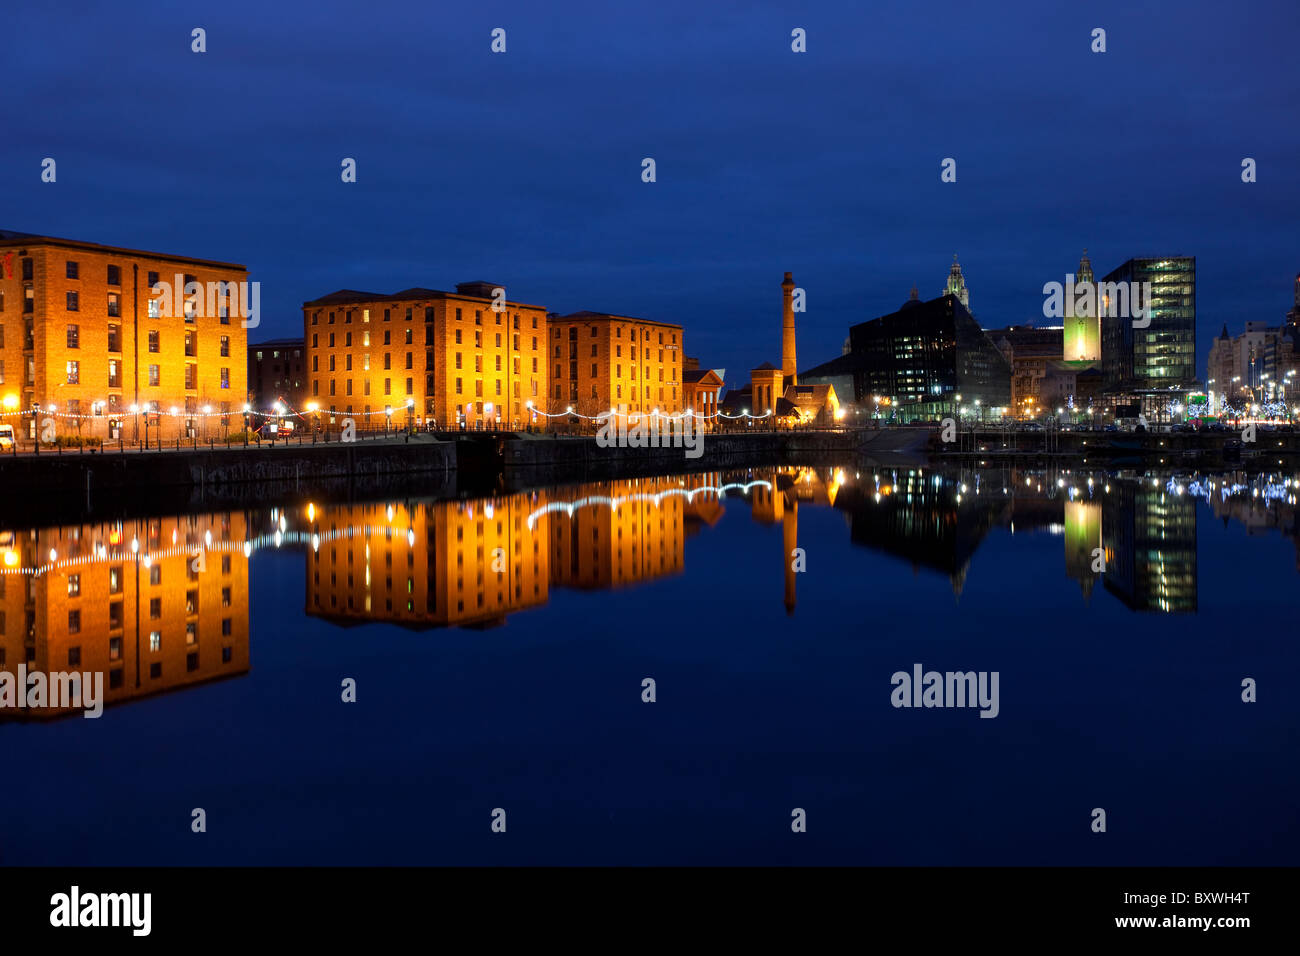 The Reflected Buildings of the Albert Dock at Night, Liverpool, Merseyside, Uk - Stock Image